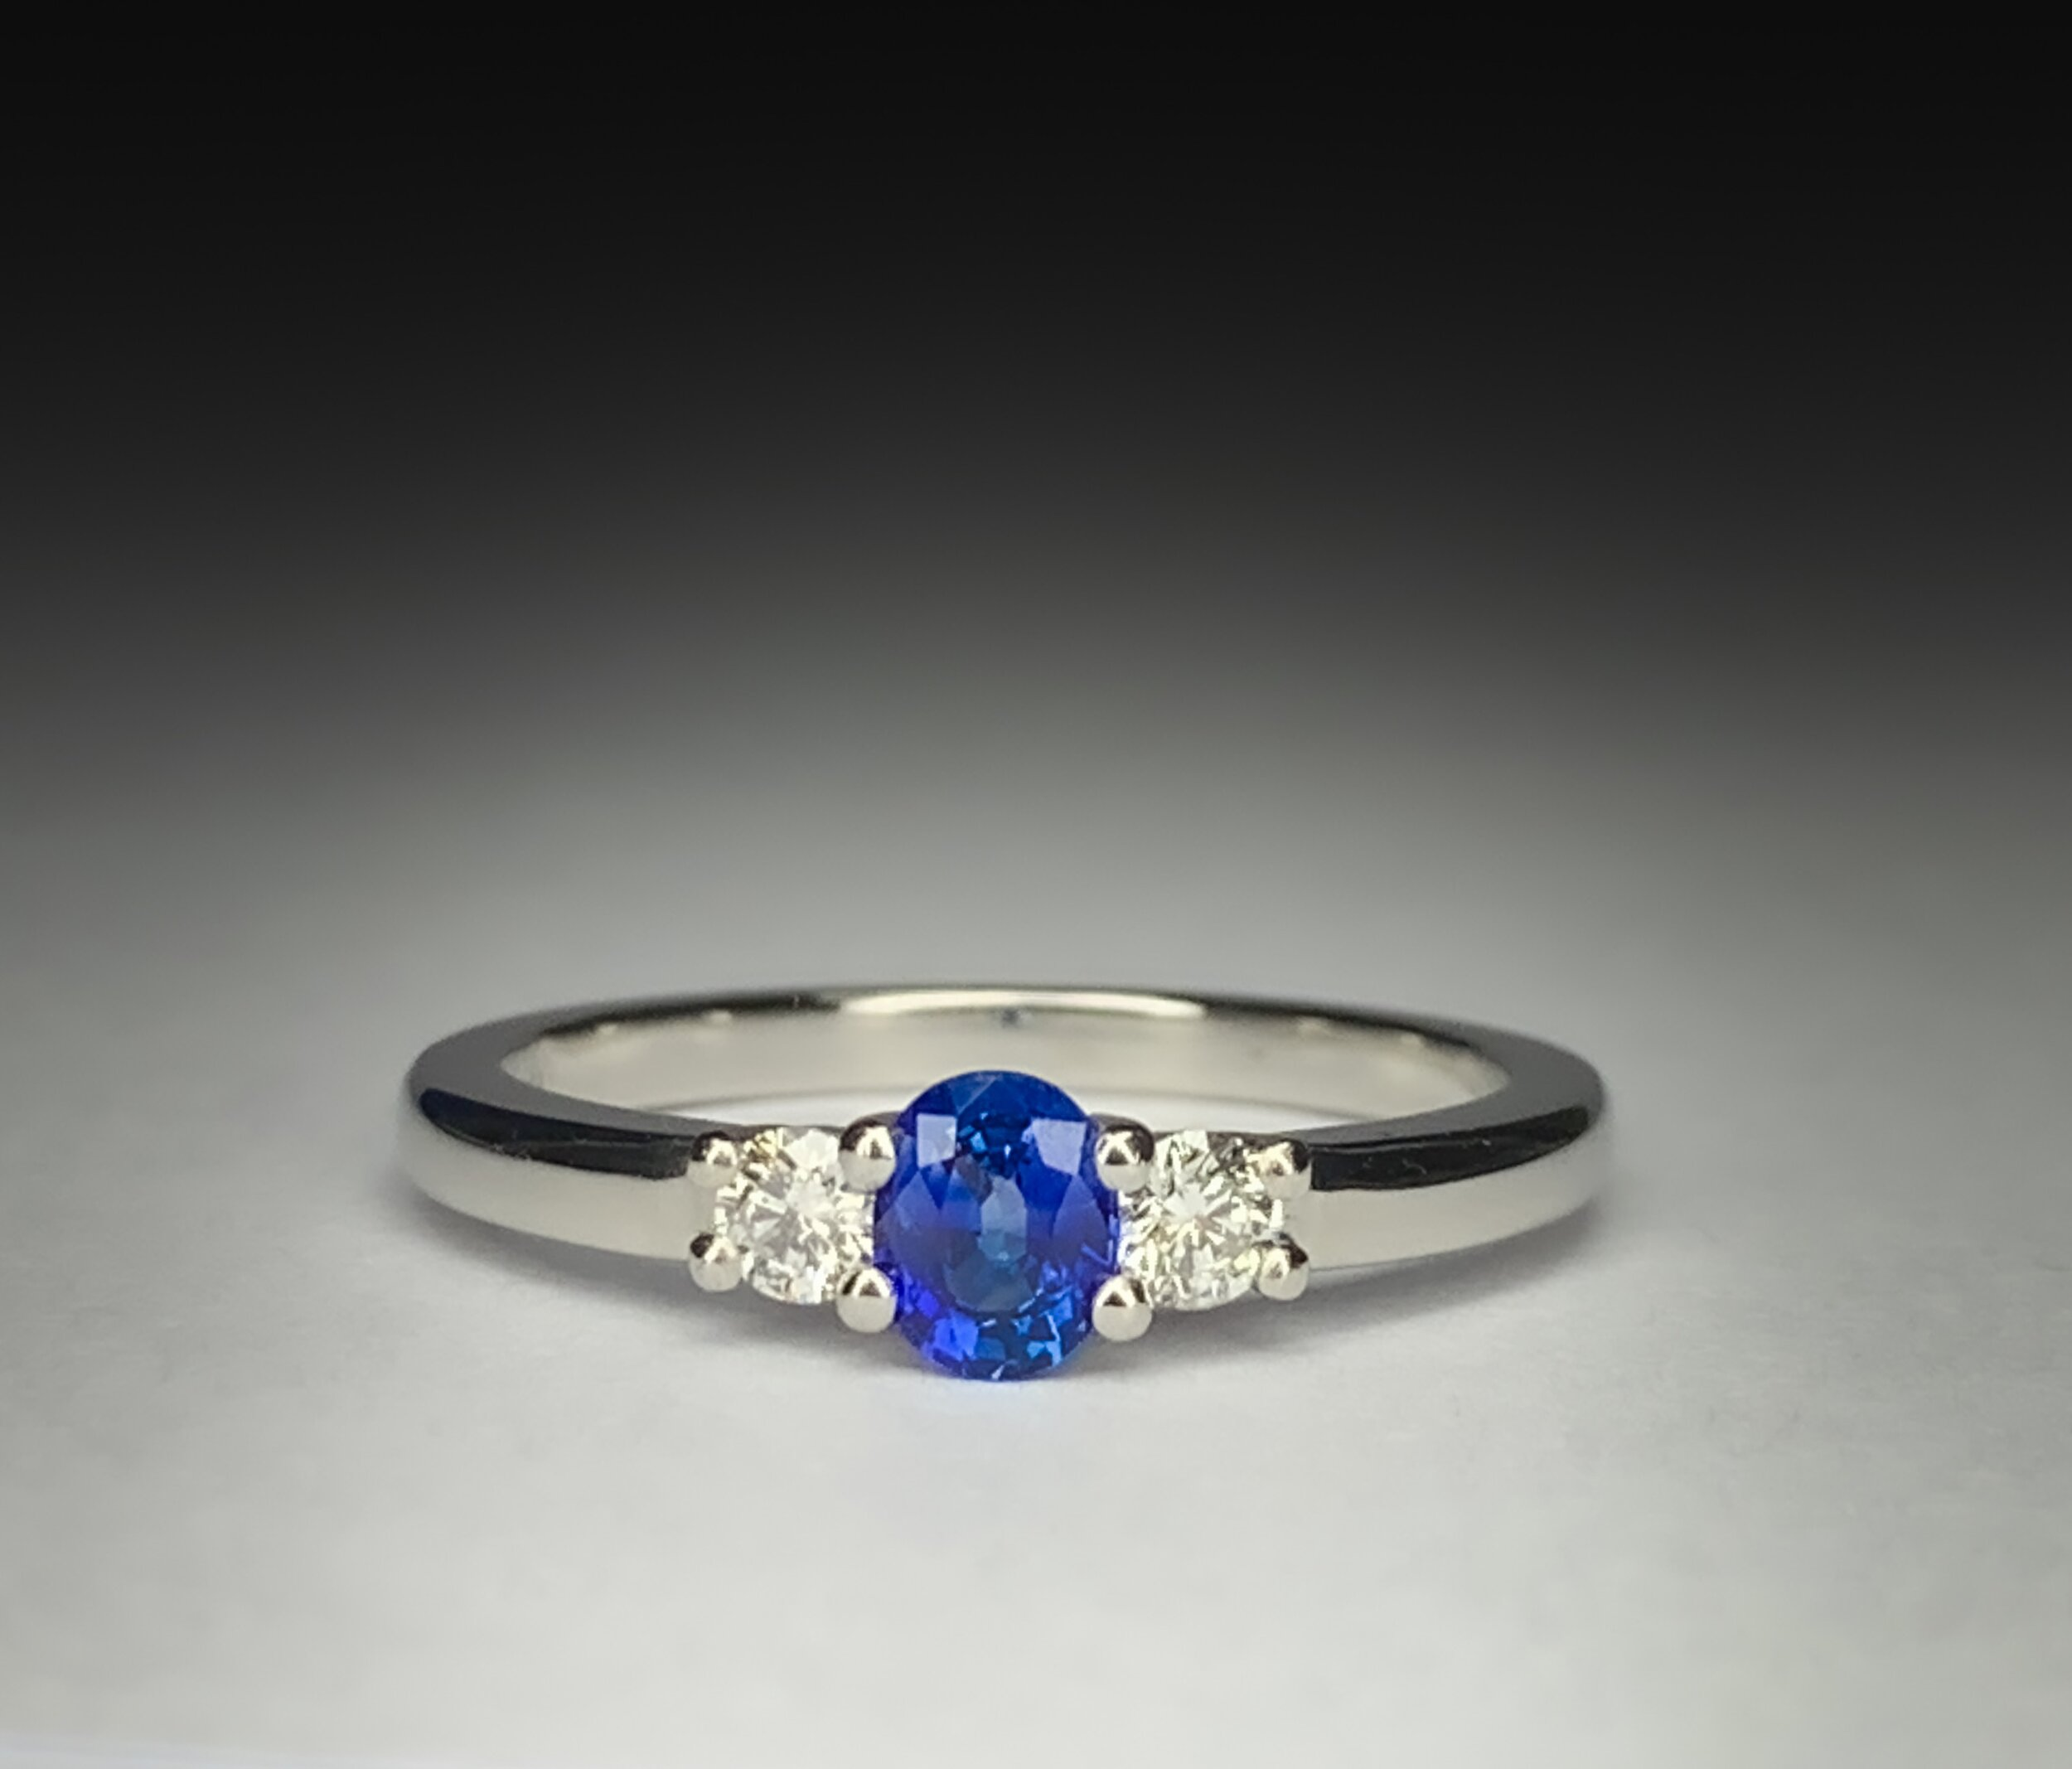 Platinum mounted diamond and 0.35ct oval blue sapphire claw set ring. Made in Chichester, England.